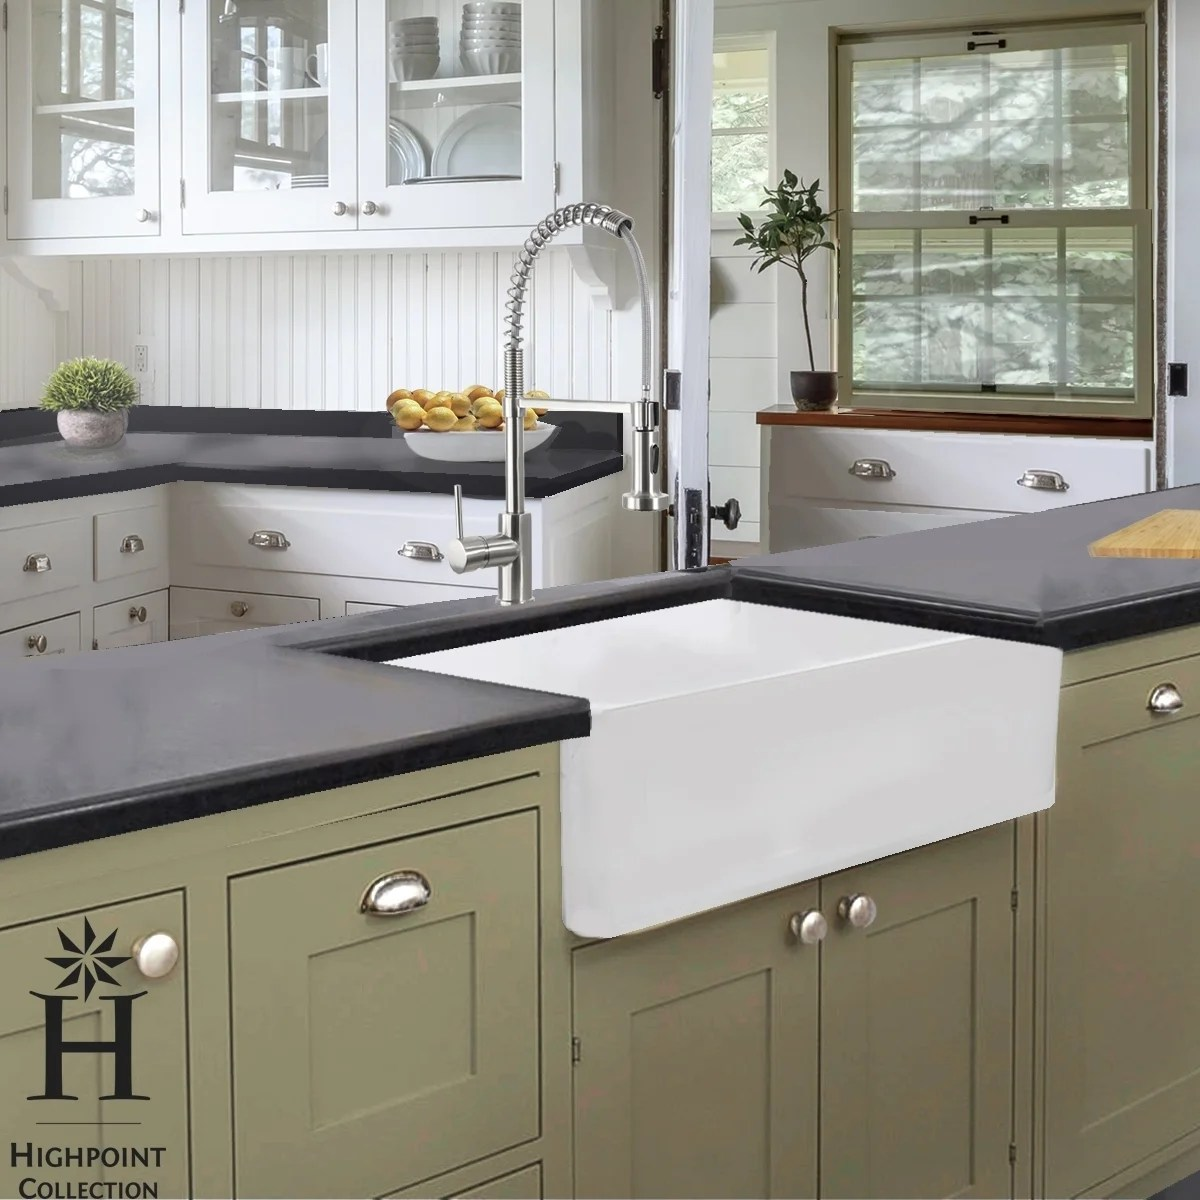 Kitchen Sink For 18 Cabinet Highpoint Collection 36 Inch Solid Reversible Farmsink Farmhouse Sink 36 X 18 X 9 65